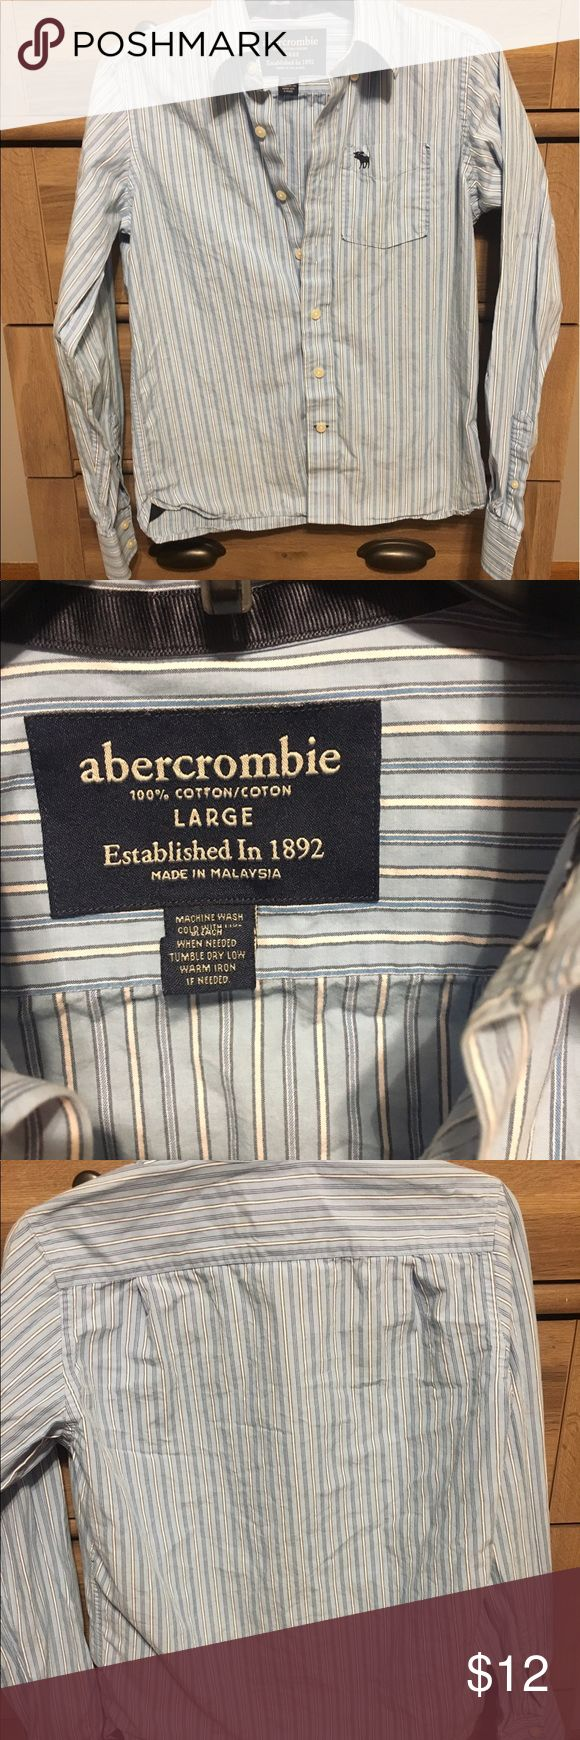 Abercrombie Dress Shirt! Button up Dress Shirt from Abercrombie! Perfect condition! It says it is a large, but definitely looks smaller, more like a medium. Abercrombie Shirts Dress Shirts